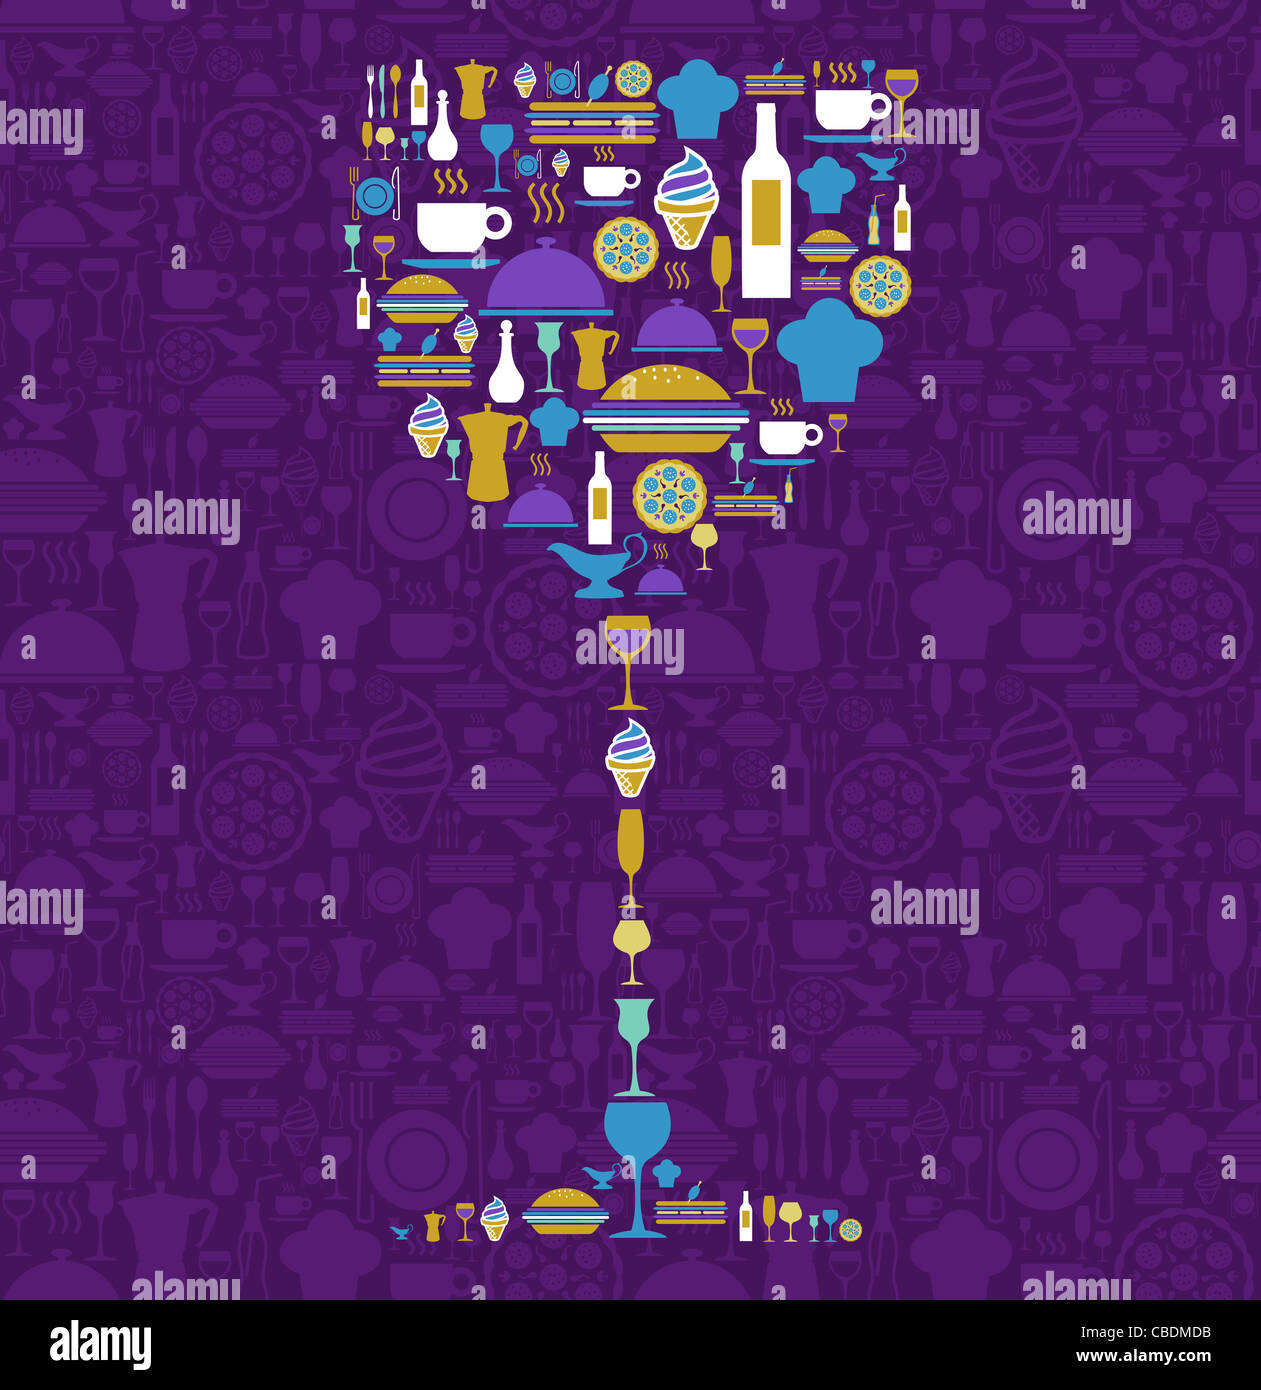 Wine glass shape made with food and beverage icon set over violet background. Vector file available. - Stock Image